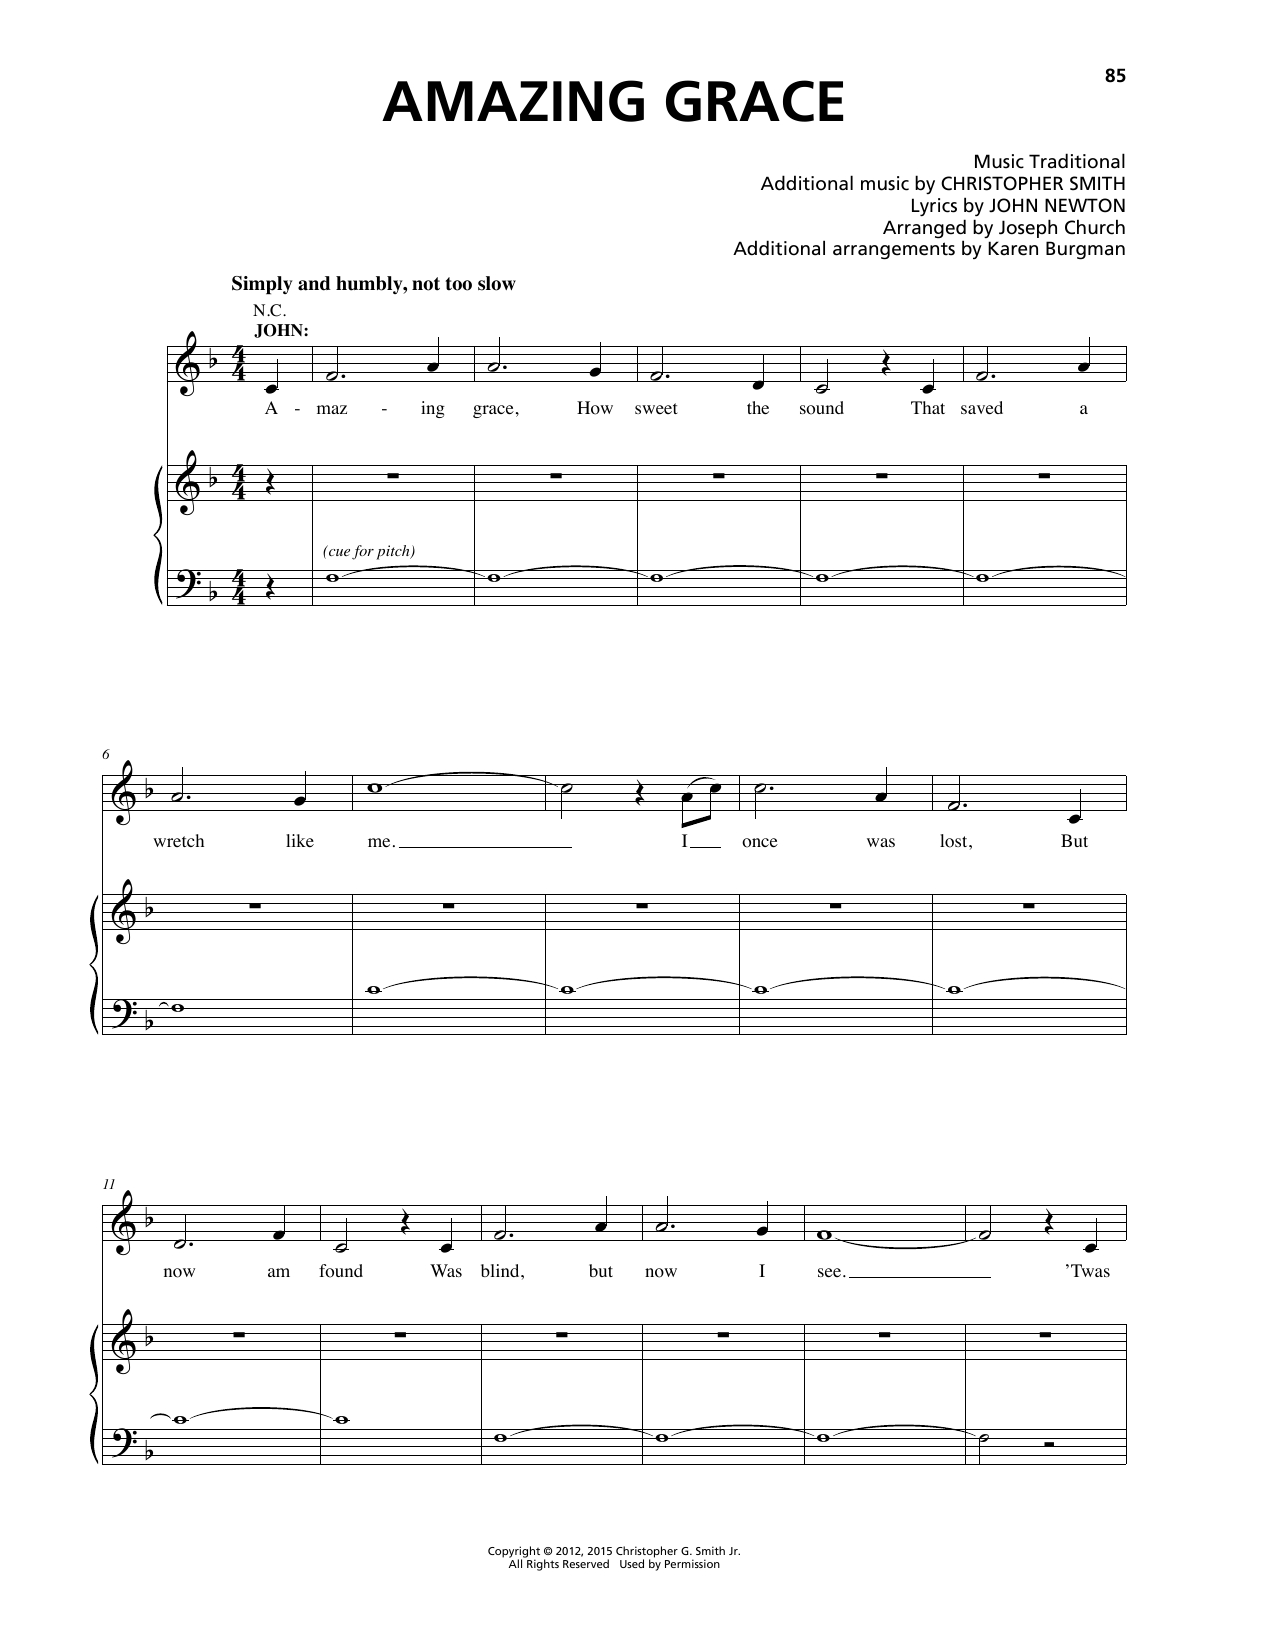 Christopher Smith 'Amazing Grace' Sheet Music Notes, Chords | Download  Printable Piano & Vocal - SKU: 164999